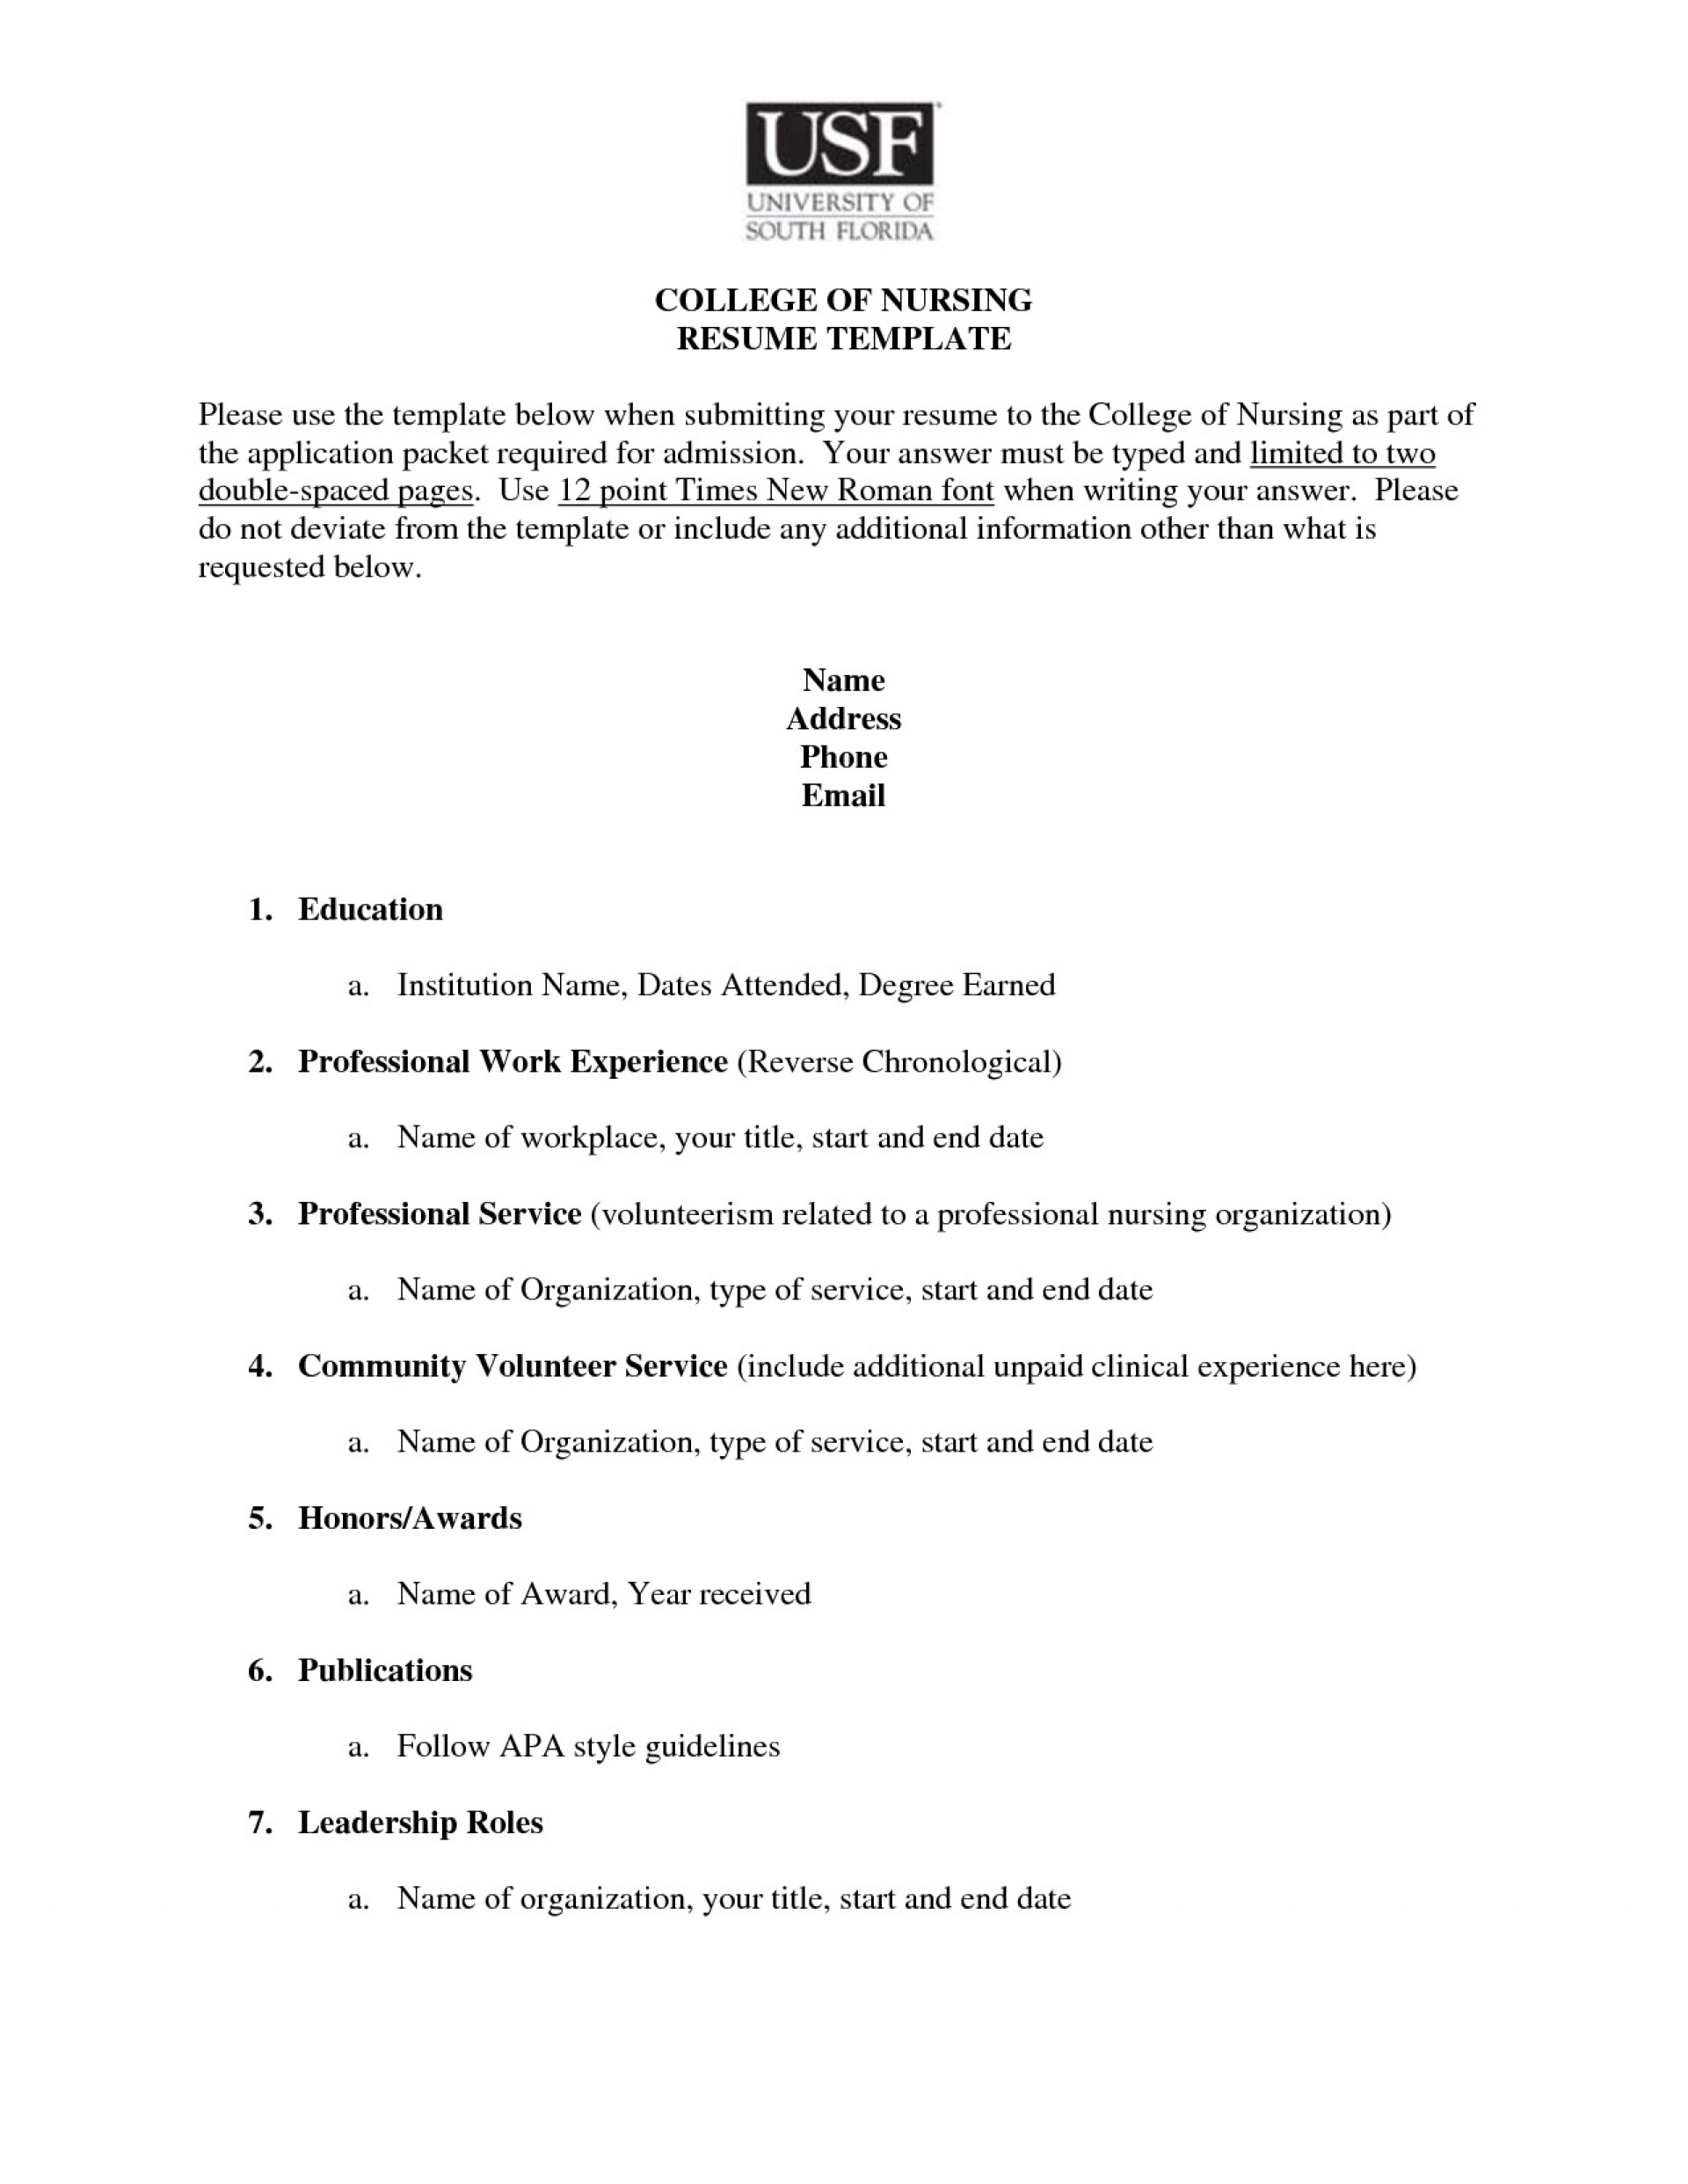 006 Awful College Admission Resume Template Design  Templates App Sample Application Microsoft Word1920